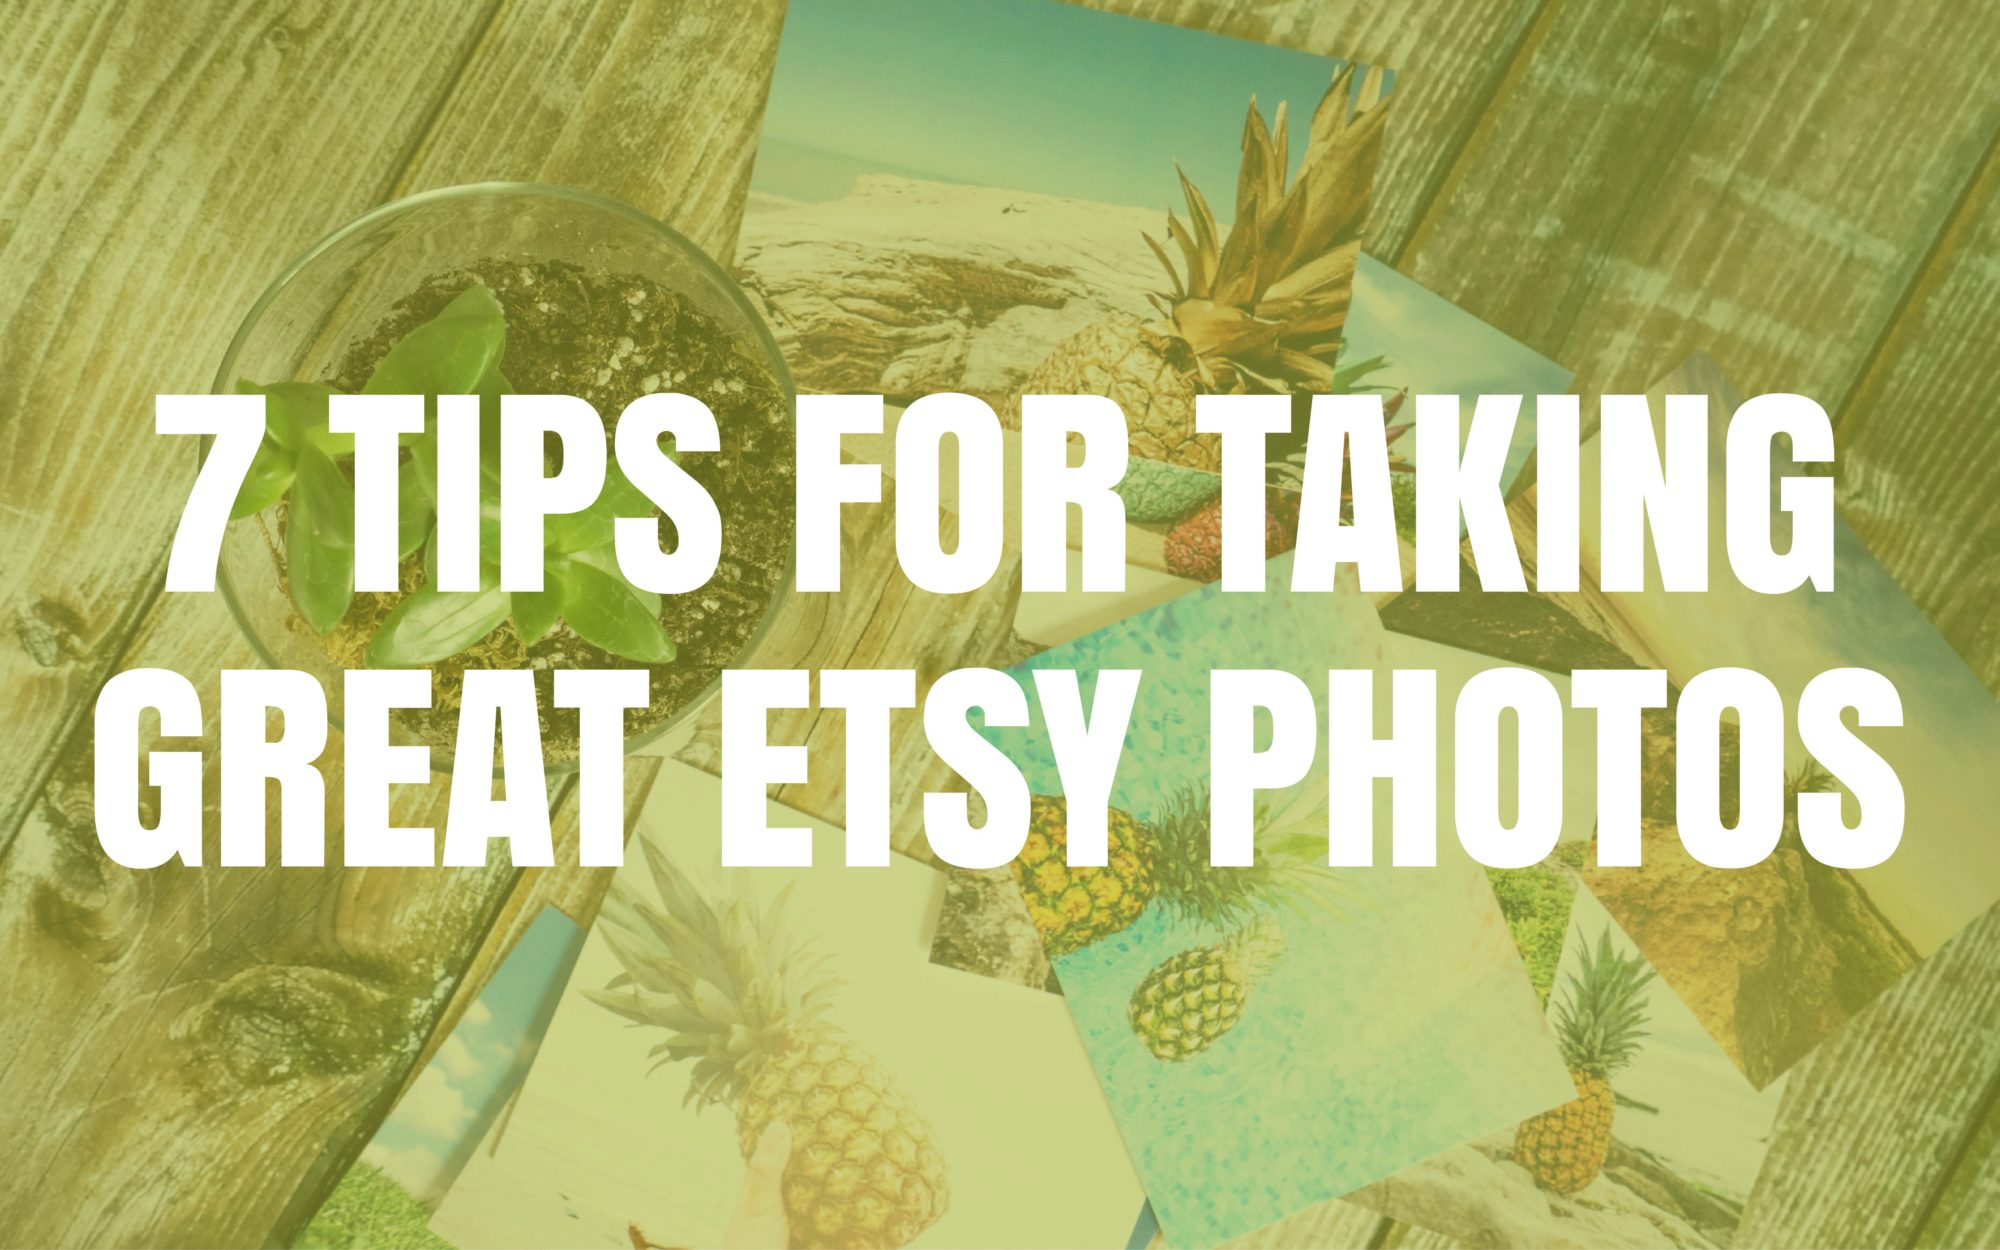 9e6cbeca8ec 7 Tips For Taking Great Etsy Photos with the Marmalead Team